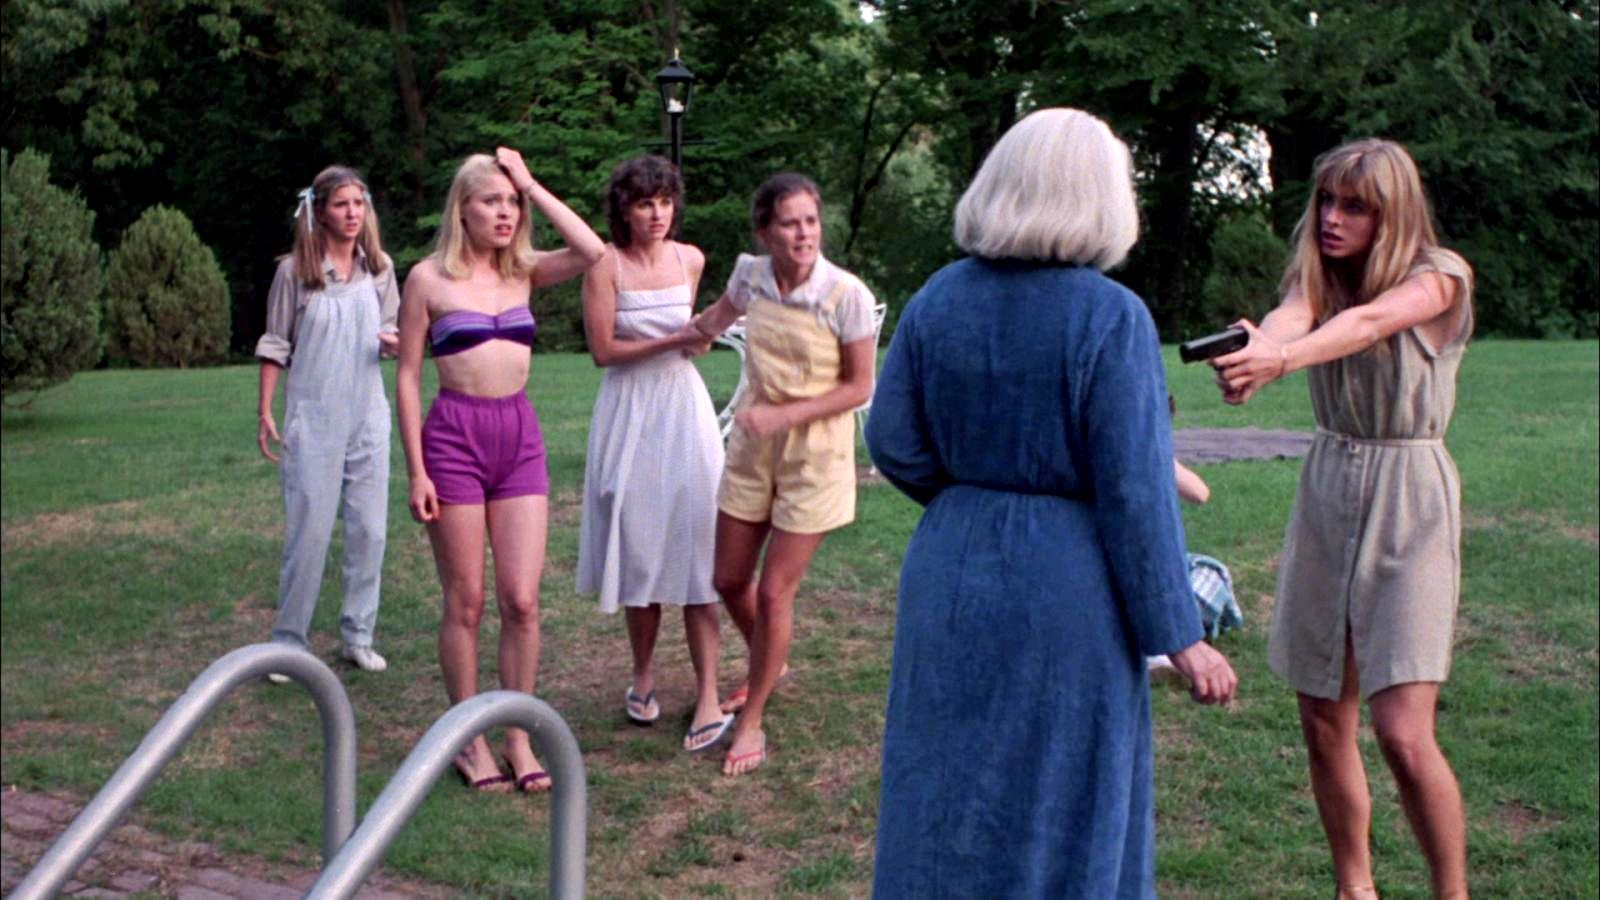 (l to r) Robin Meloy, Jodi Draigie, Ellen Dorsher, Kate McNeil and Eileen Davidson force Lois Kelso Hunt into the pool at gunpoint in The House on Sorority Row (1982)